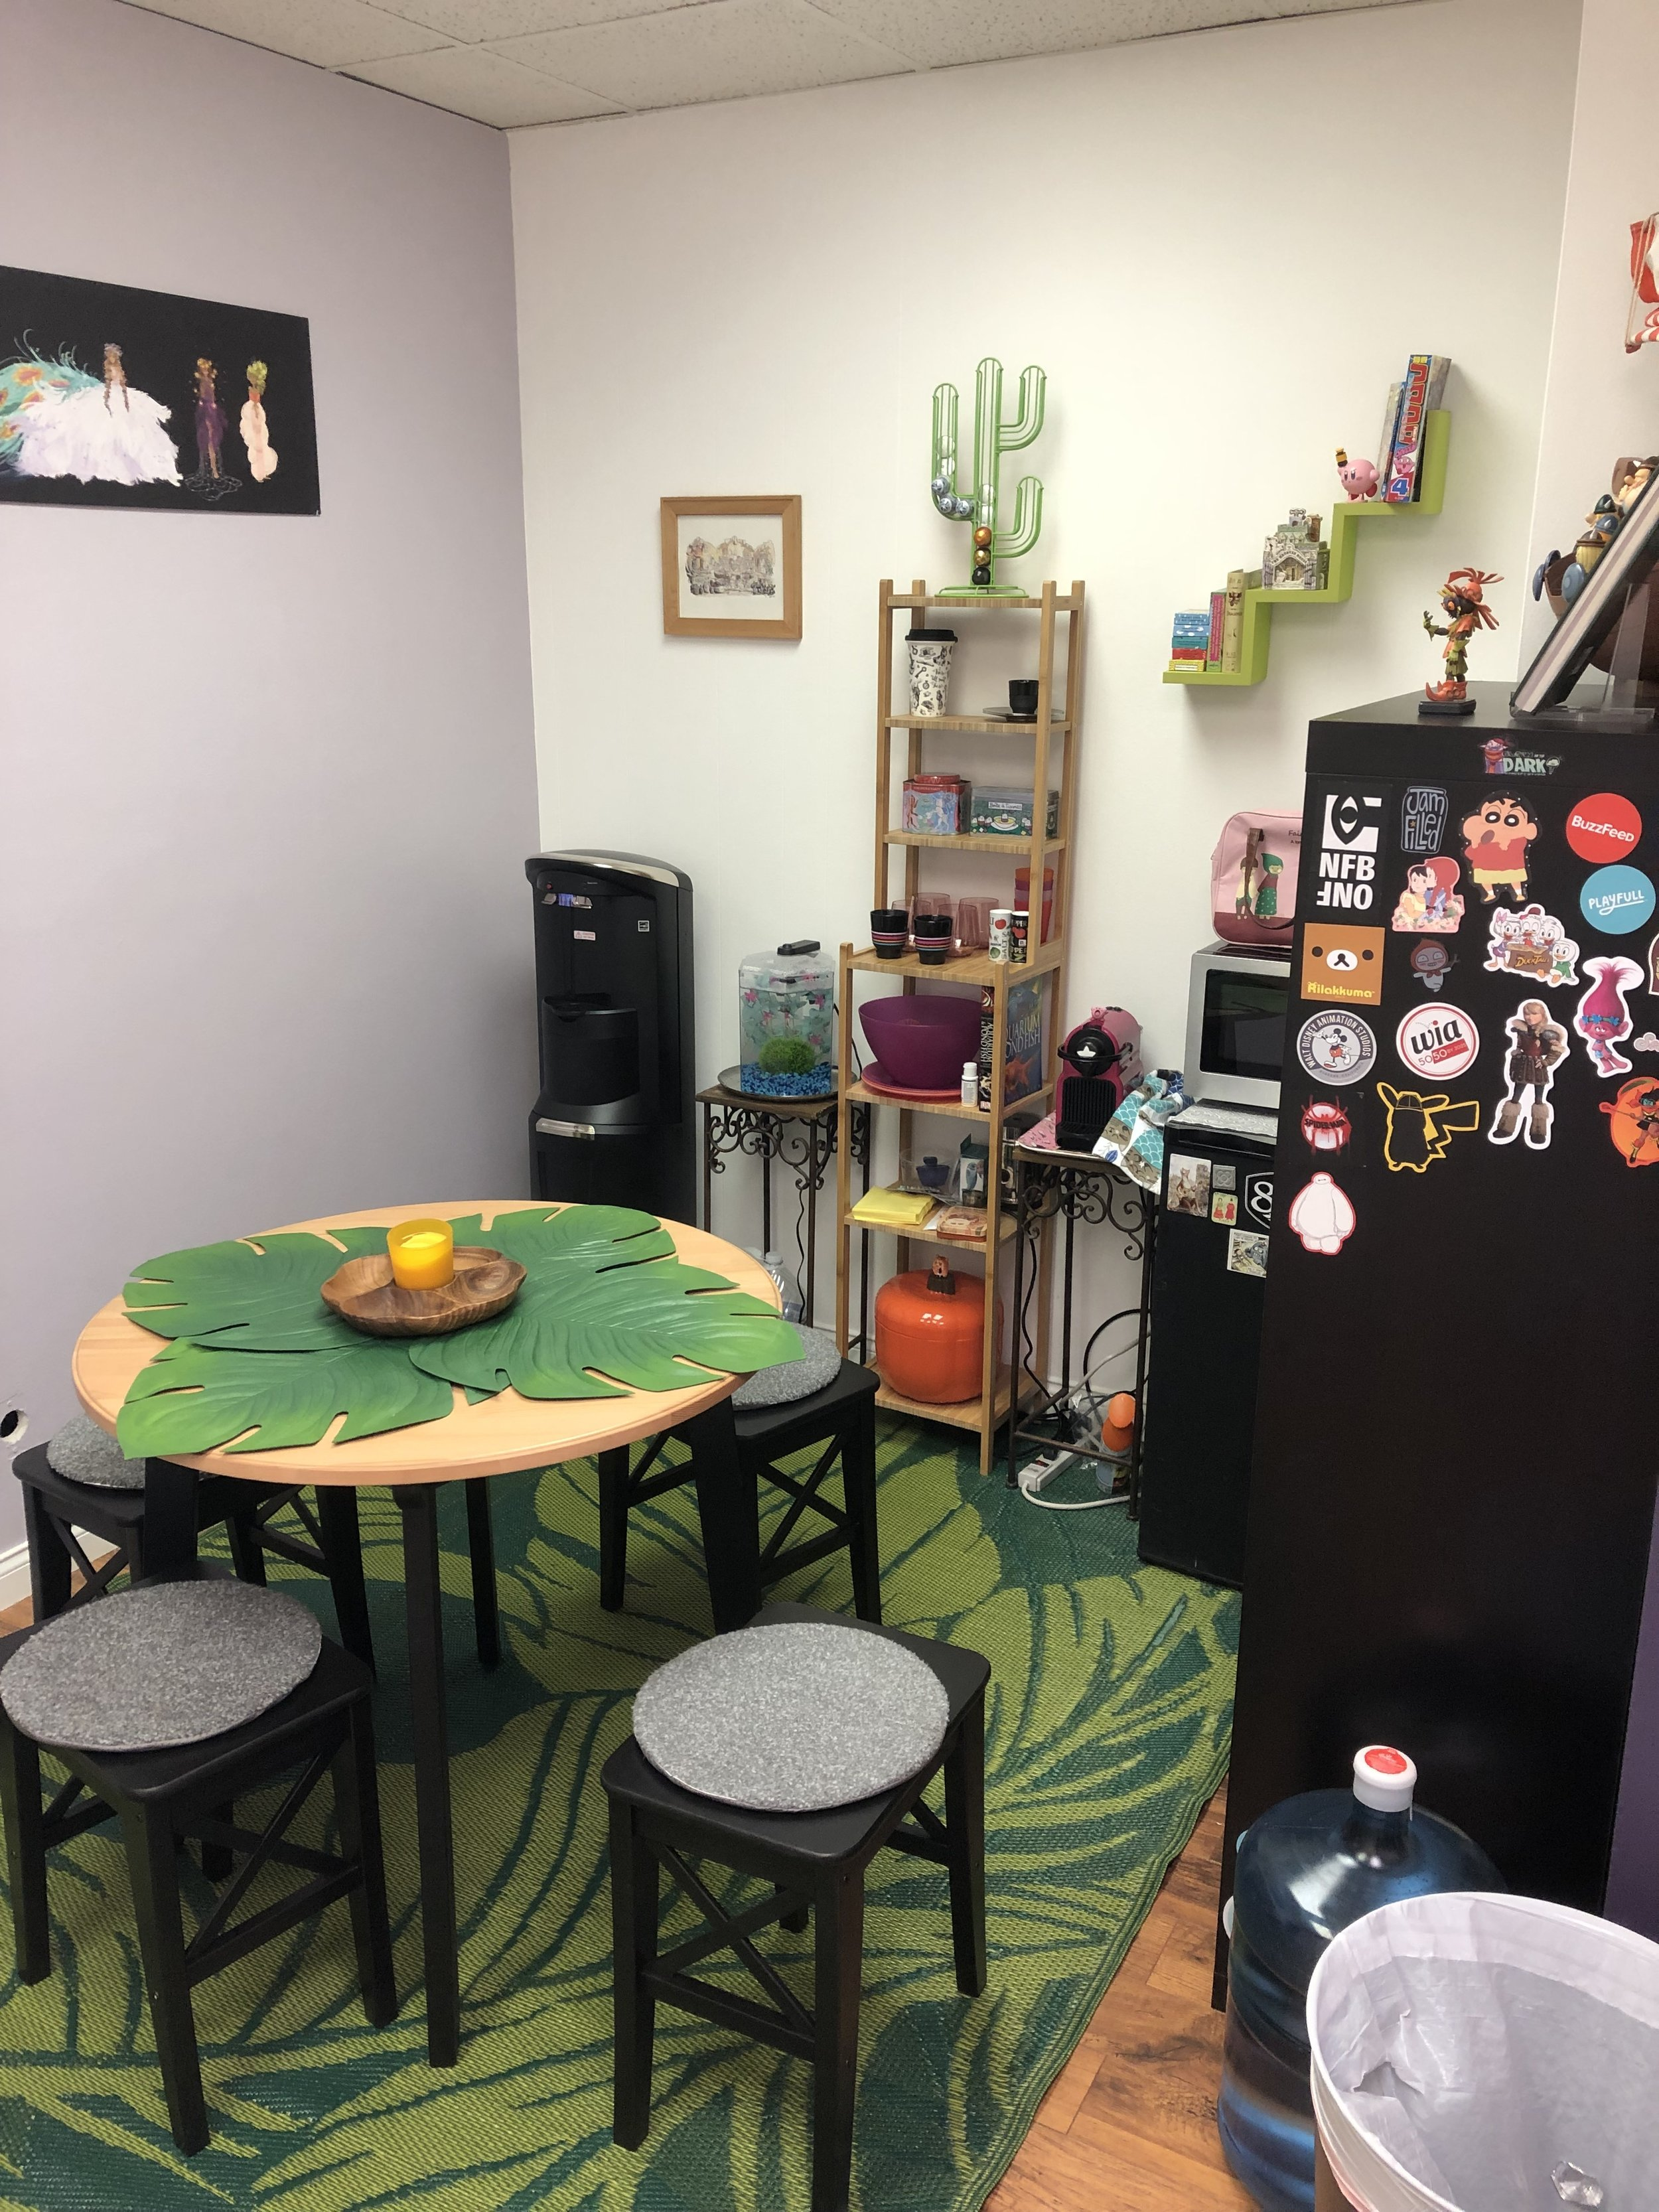 Our dining area and coffee station!